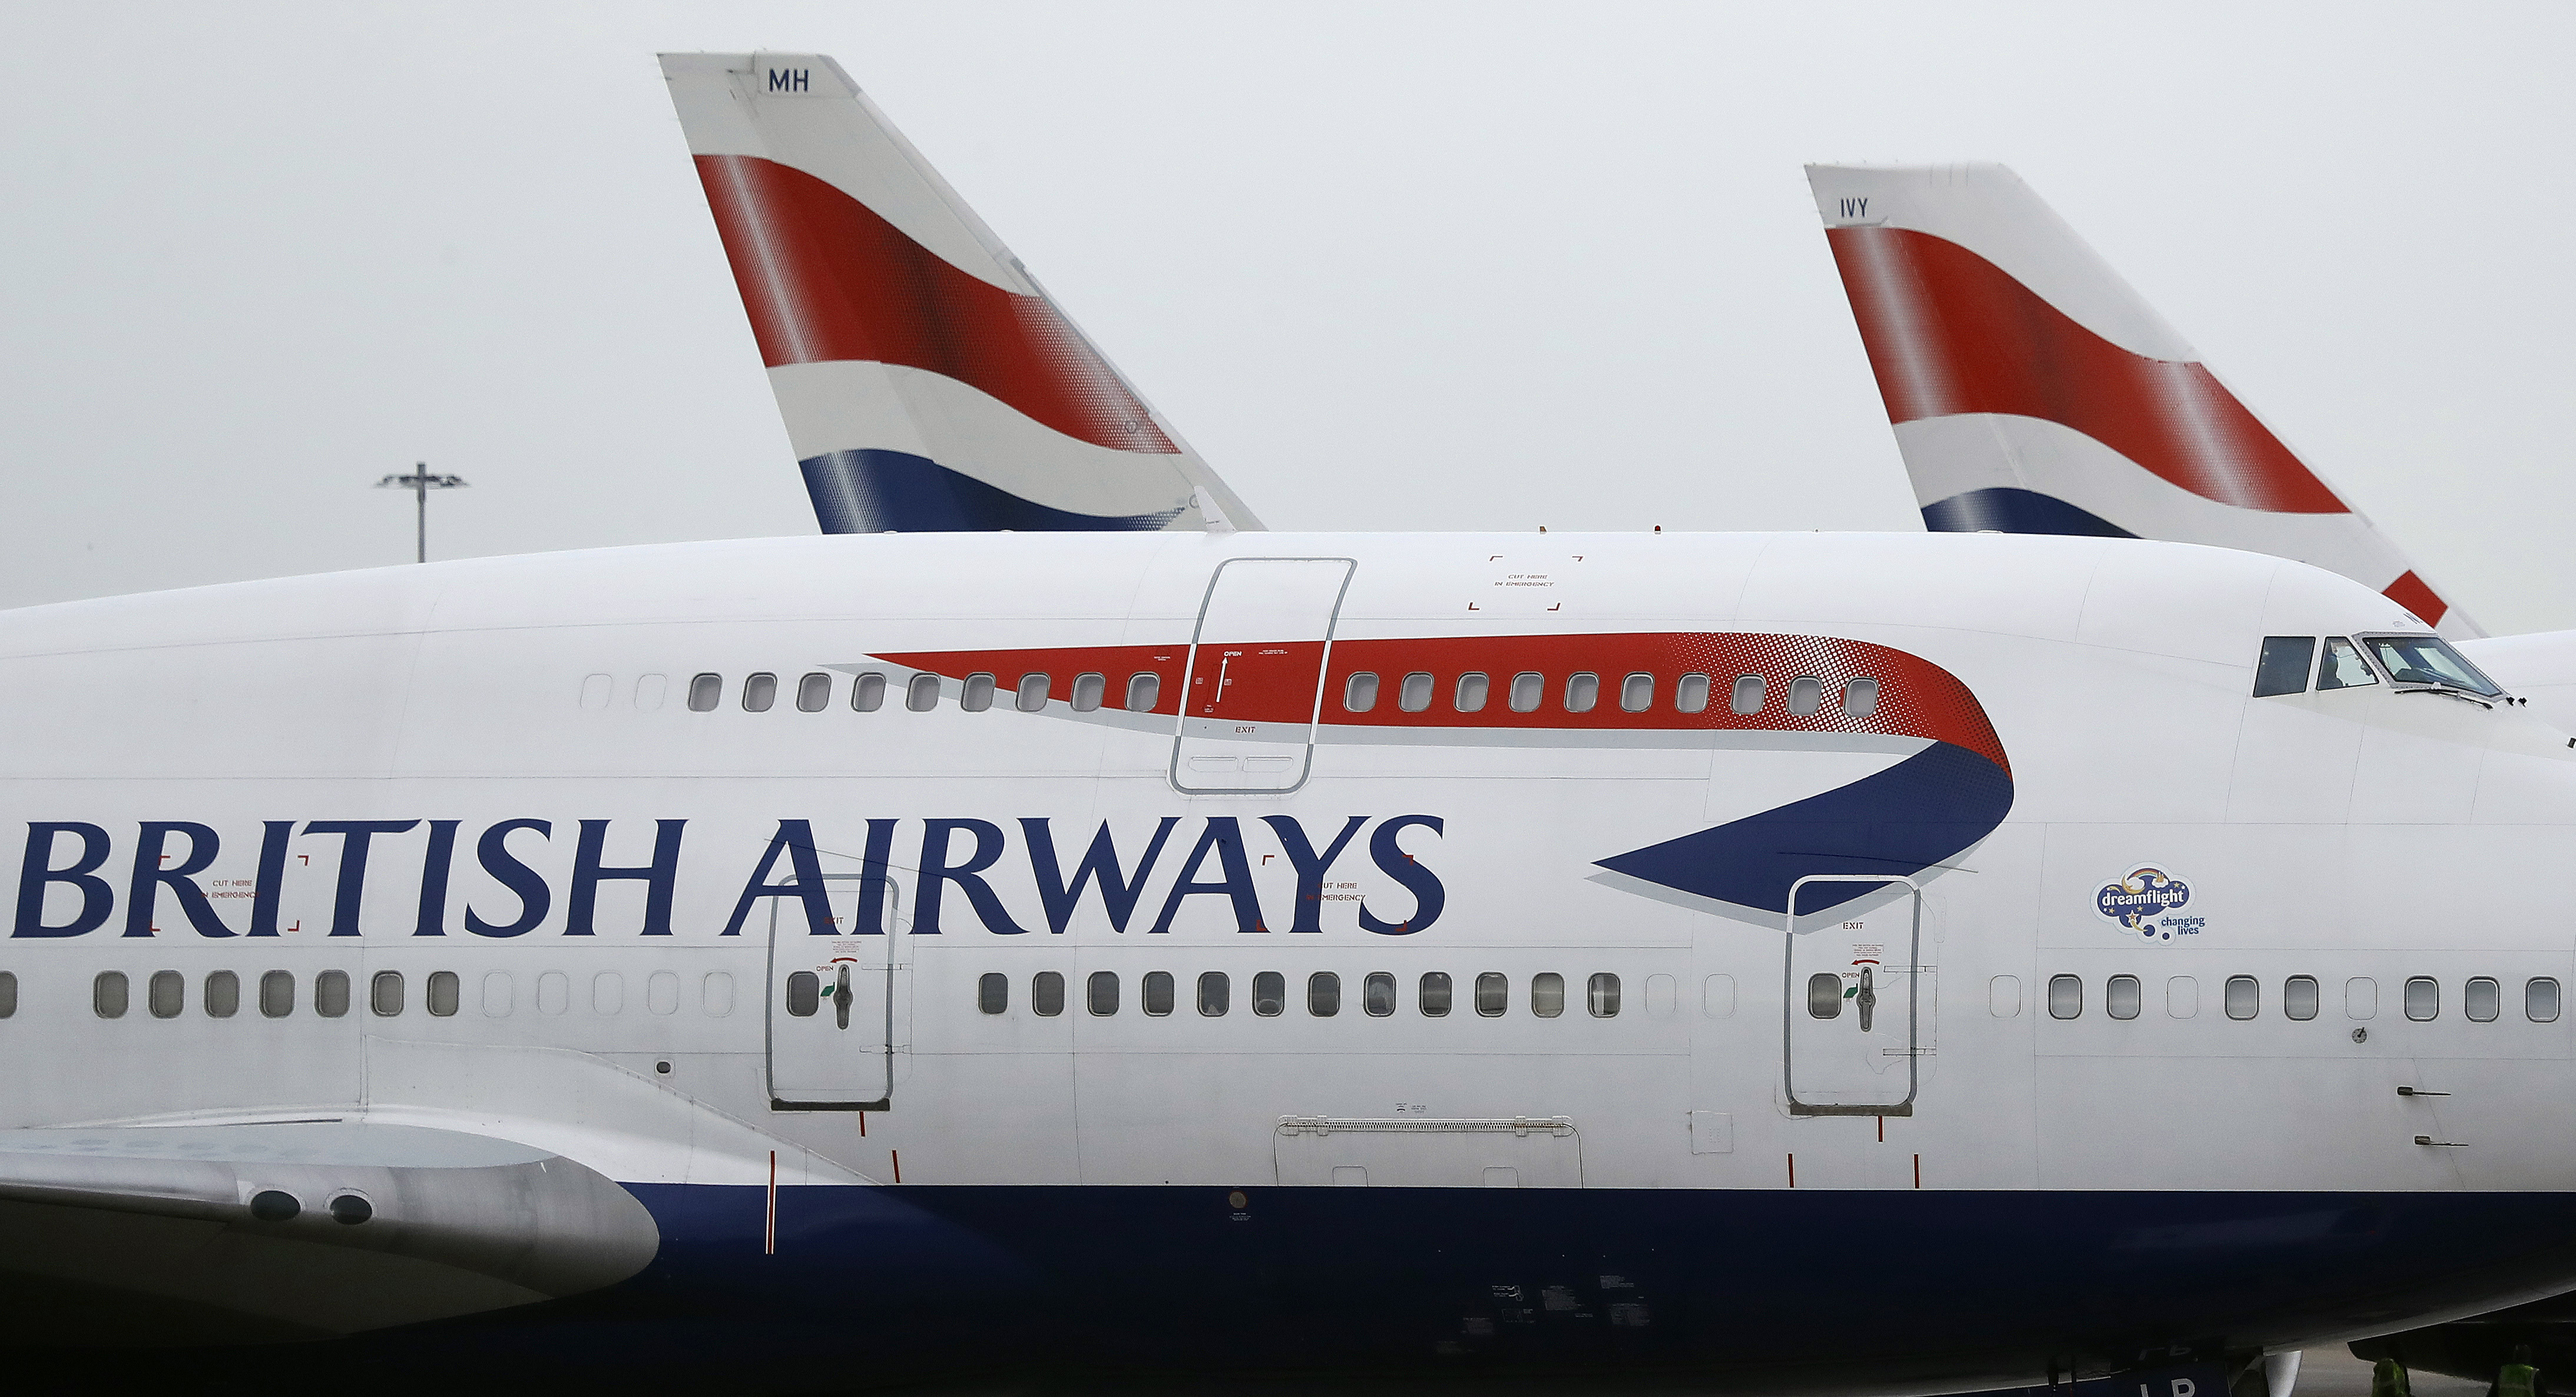 British Airways planes are parked at Heathrow Airport in London on Jan. 10, 2017.